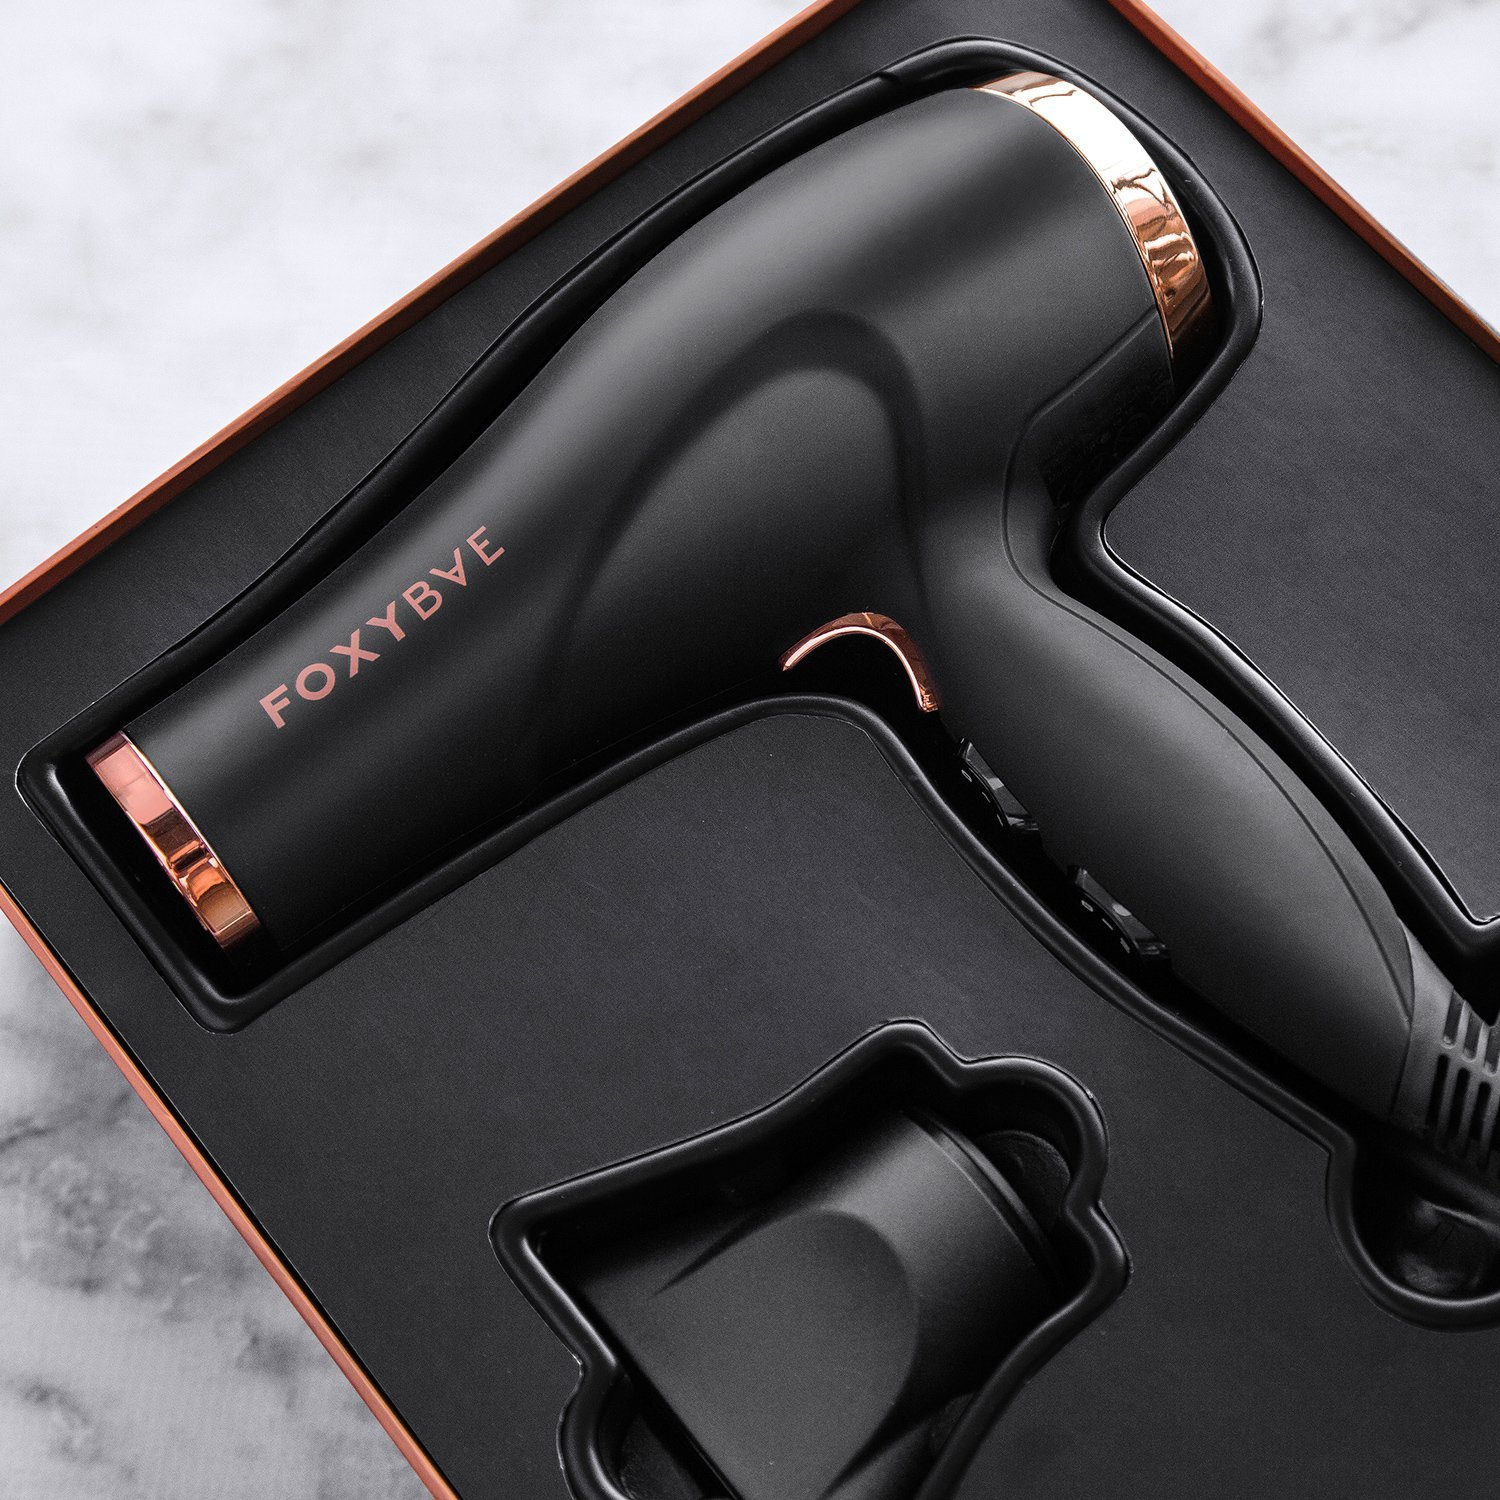 Amazon.com: FoxyBae Blomance Professional Hair Dryer - Salon Grade Rose Gold and Black Ionic Blow Dryer - Ceramic Tourmaline and Negative Ion - Best Hair ...